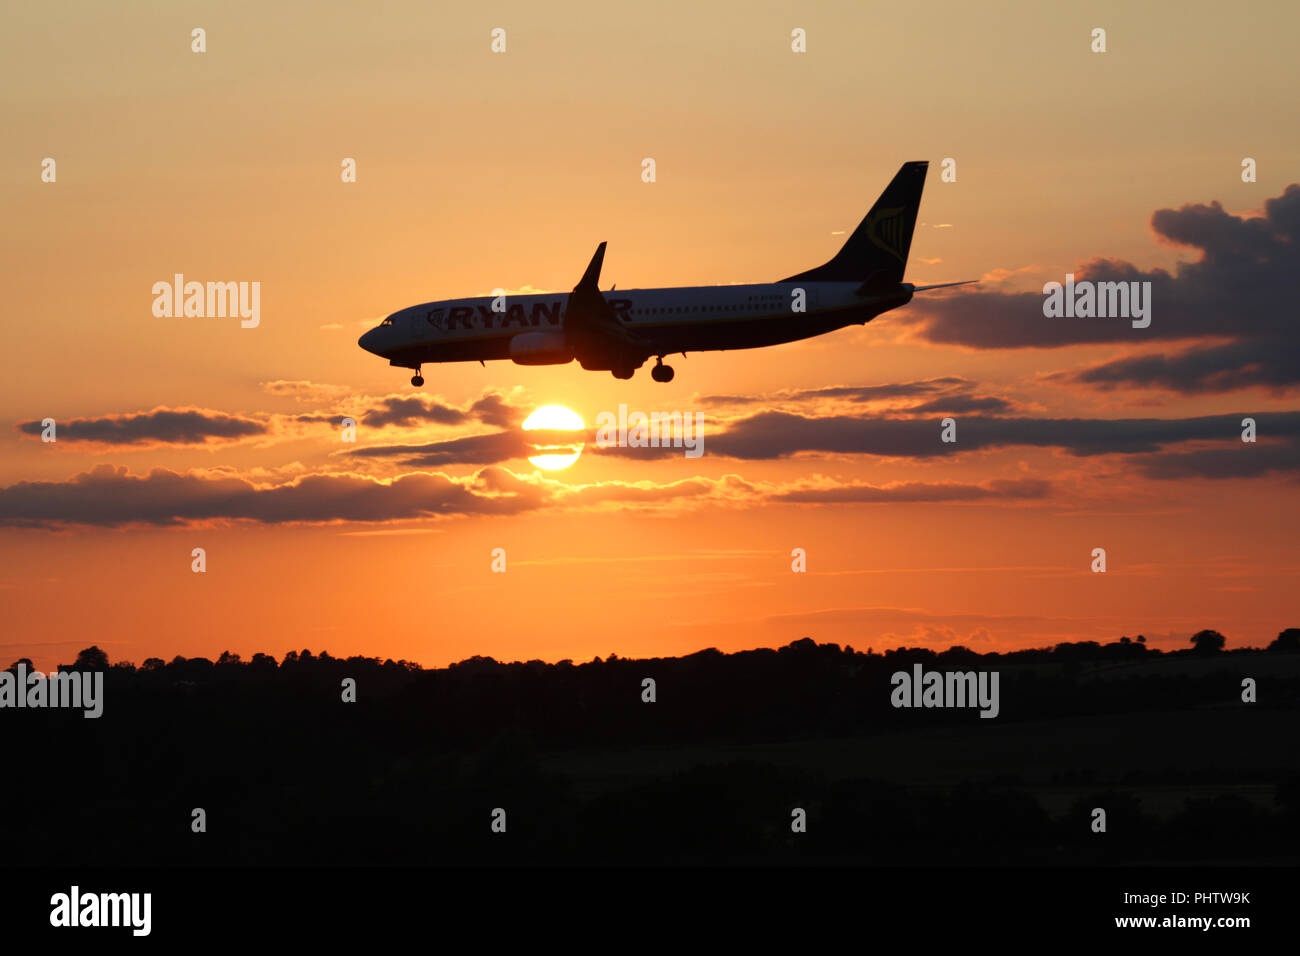 A ryanair boeing 737 jet EI-ESW flies in front of the setting sun as it makes its final approach into Edinburgh airport - Stock Image